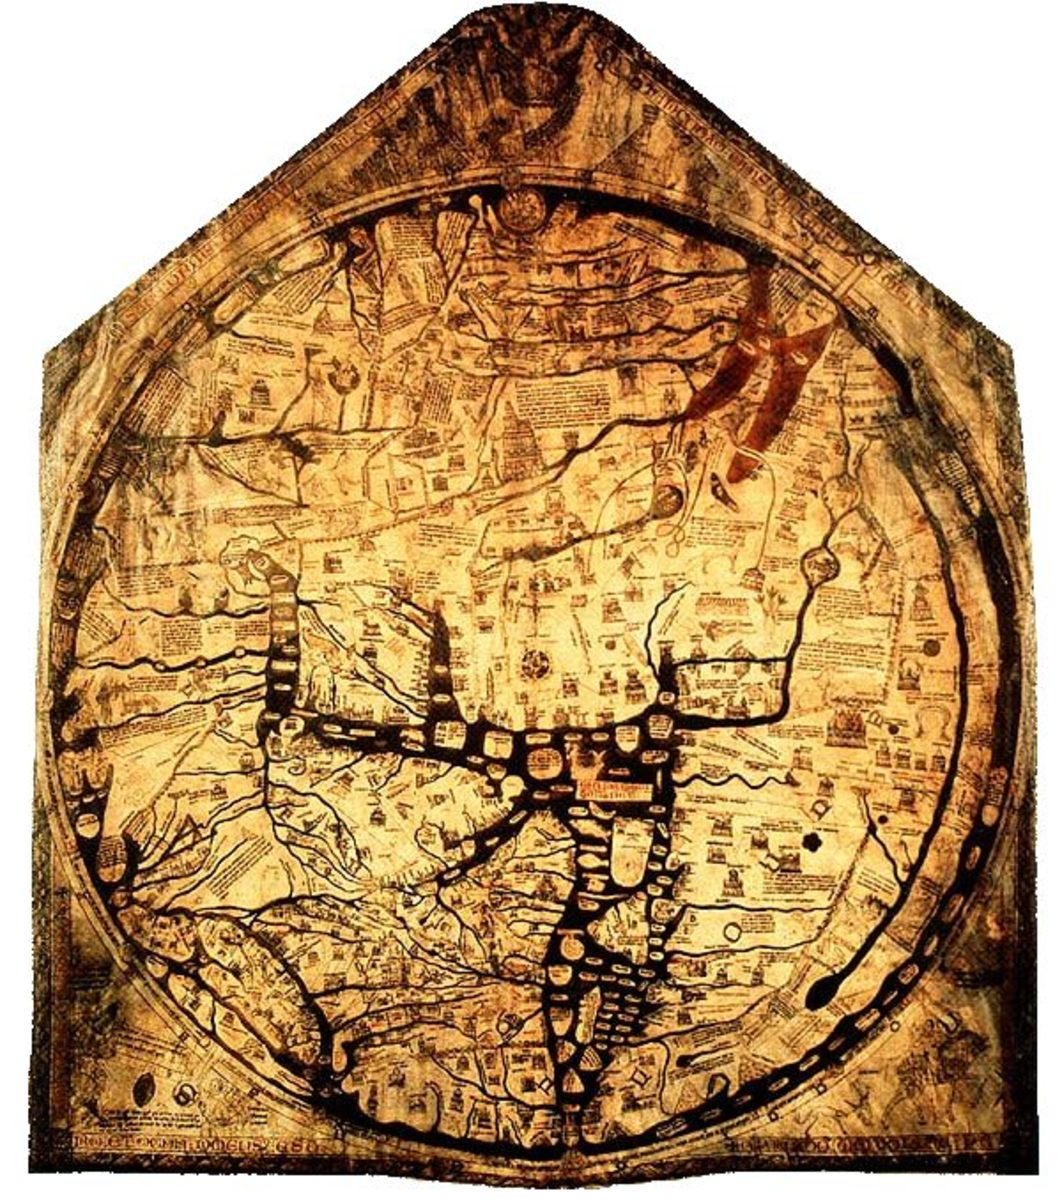 Mappa Mundi map of the world dating from 1300